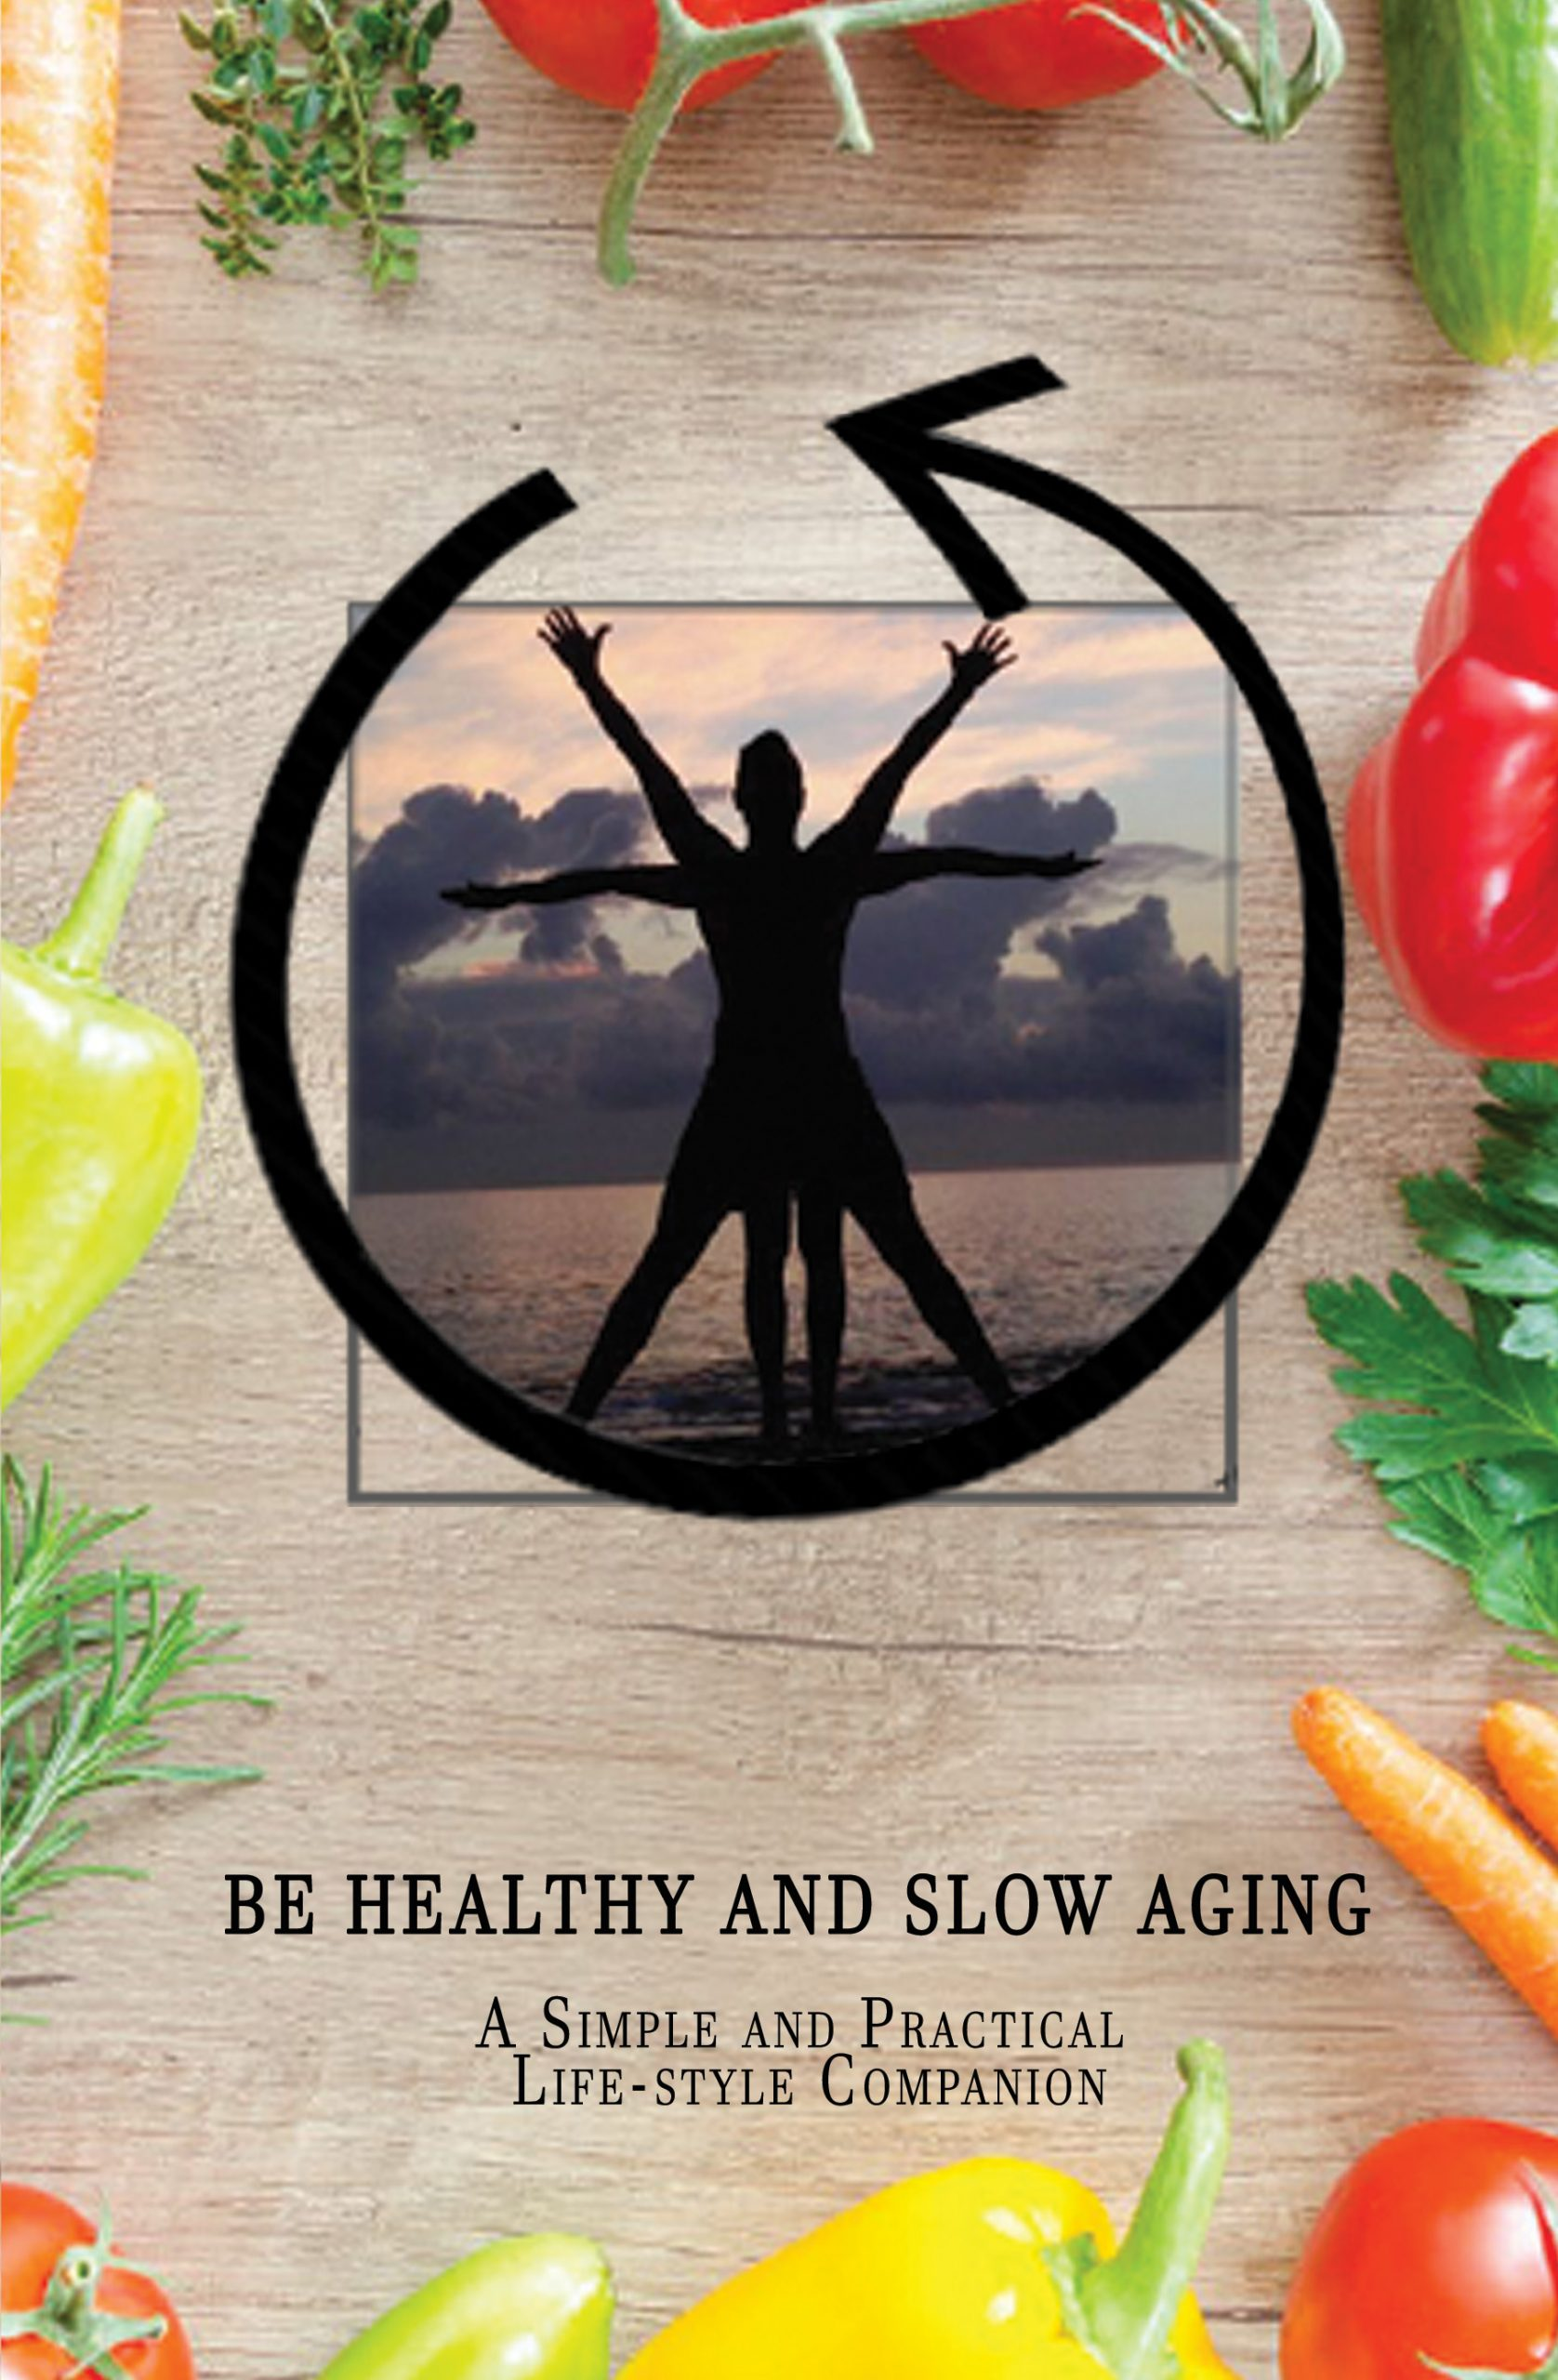 Be Healthy and Slow Aging Book Cover